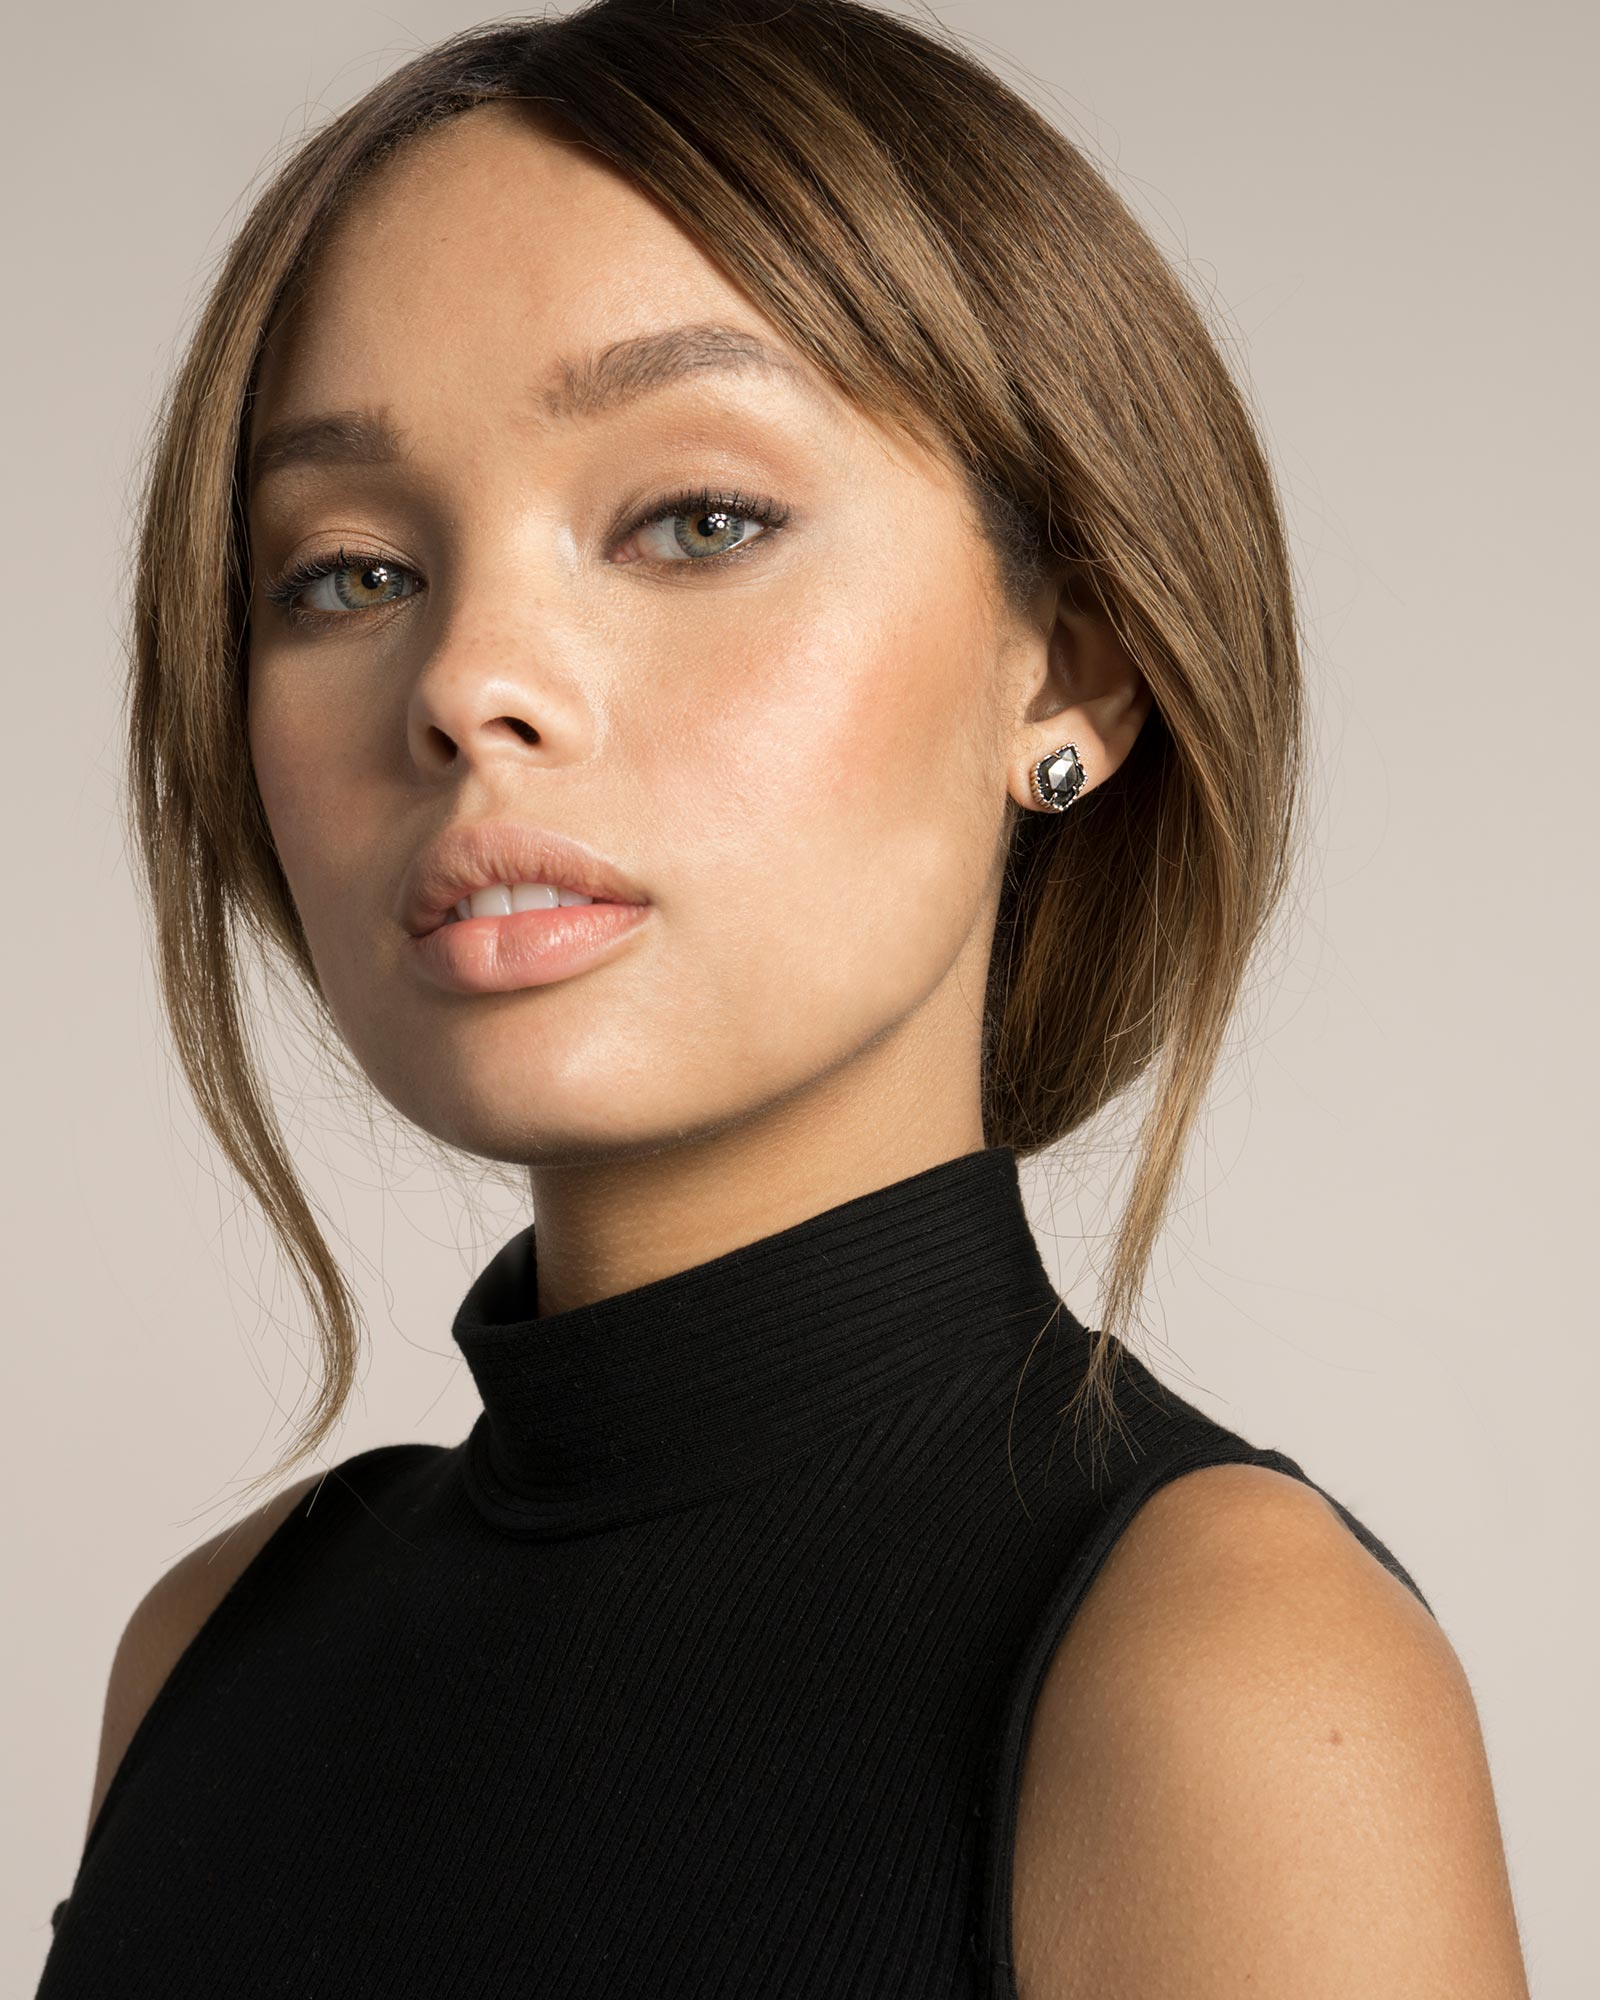 Tessa Stud Earrings in Black